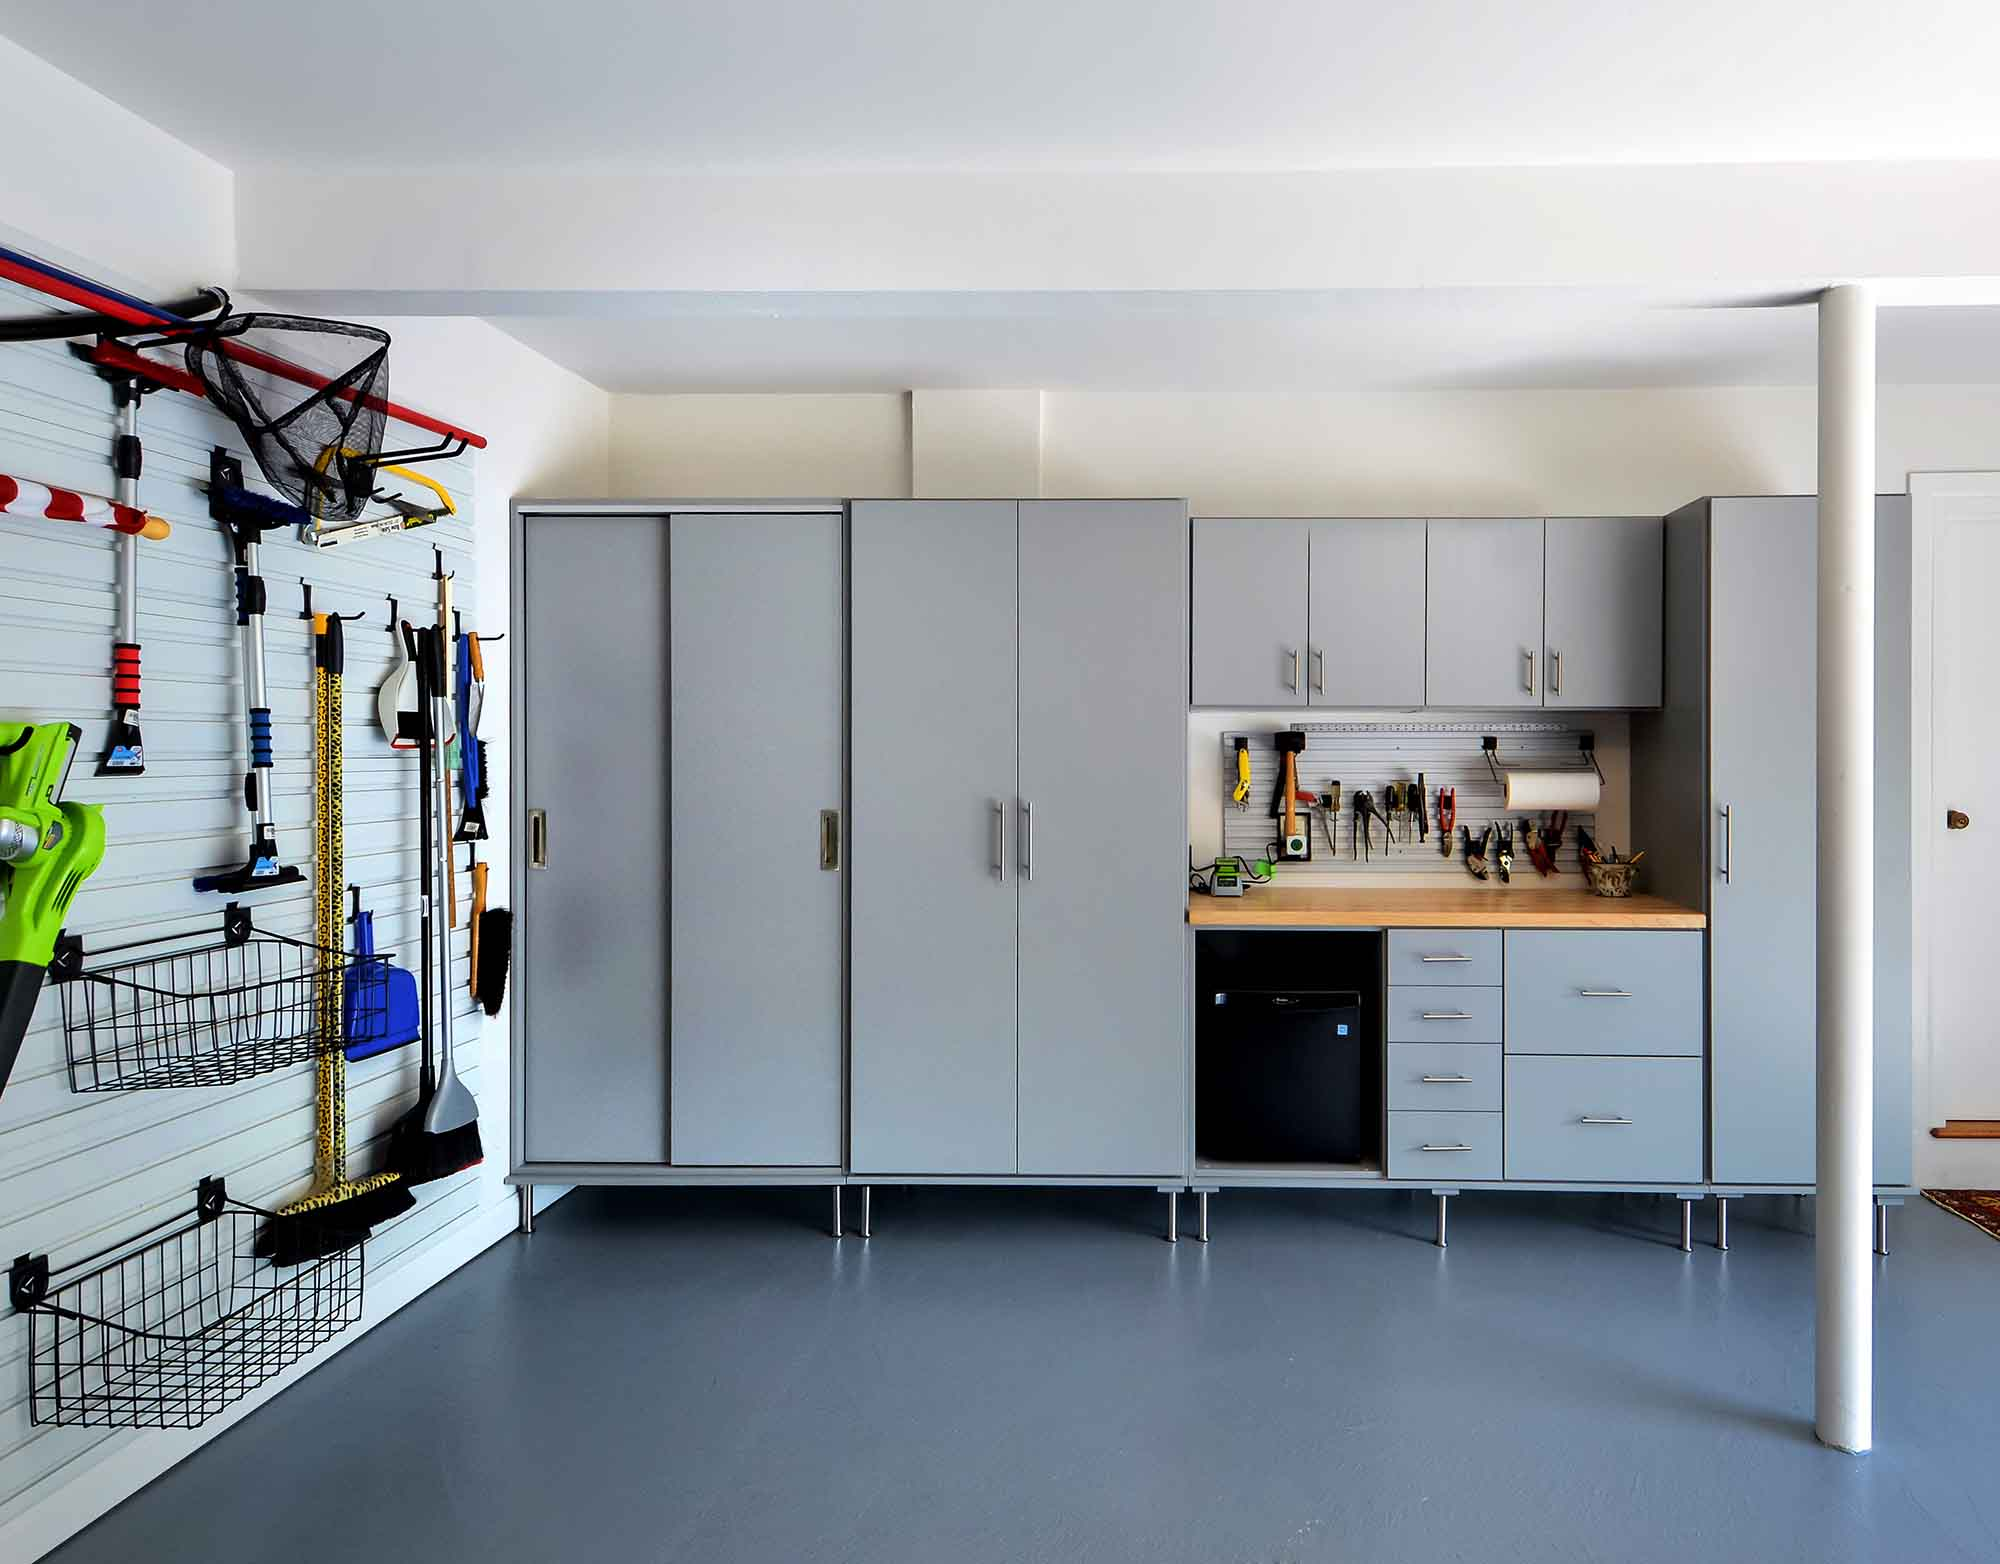 Organized garage with storwall system and cabinets